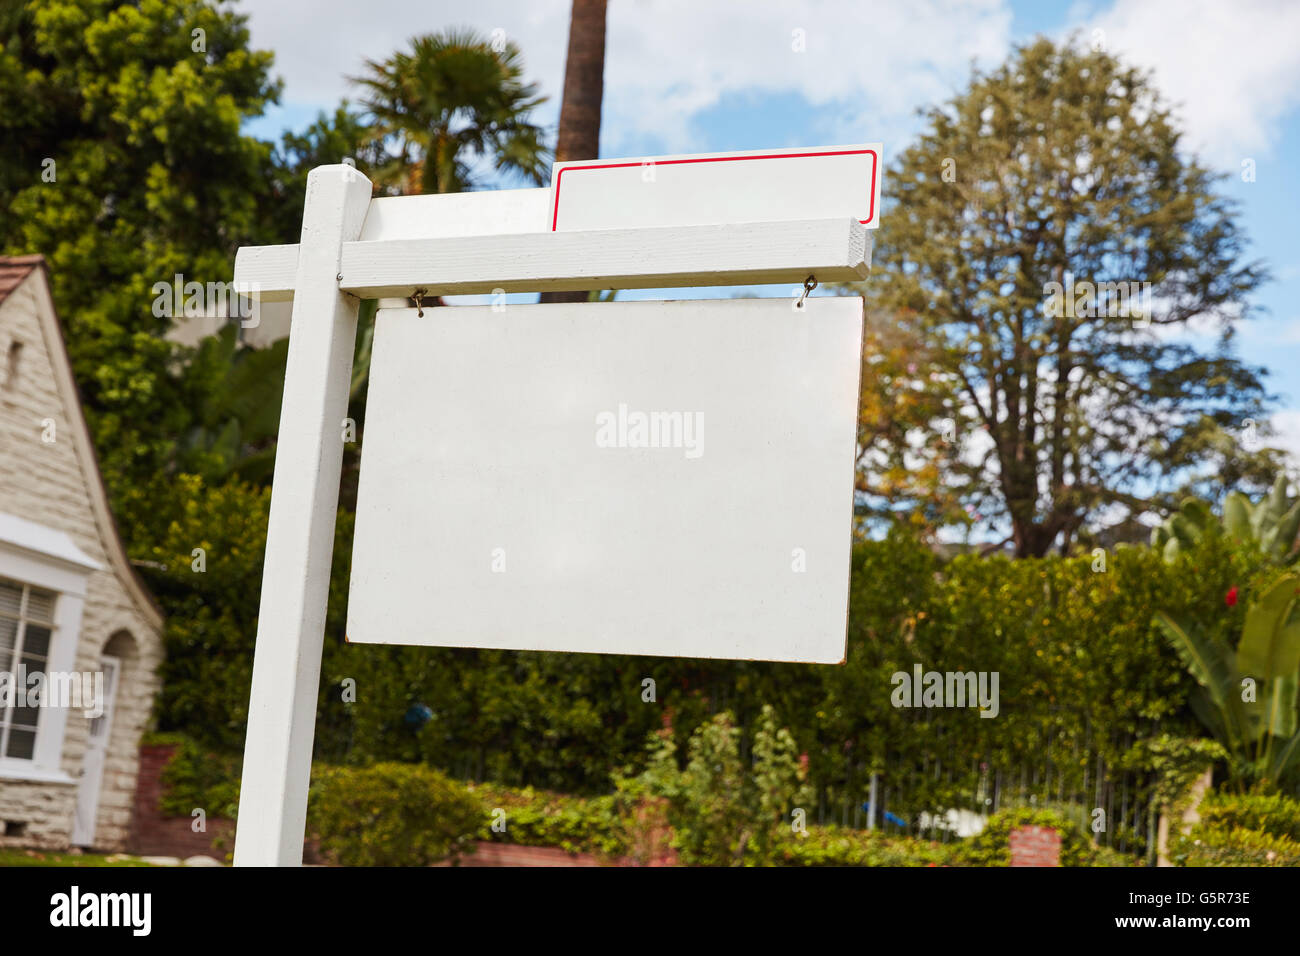 Empty sign on house for rent or lease in California, USA